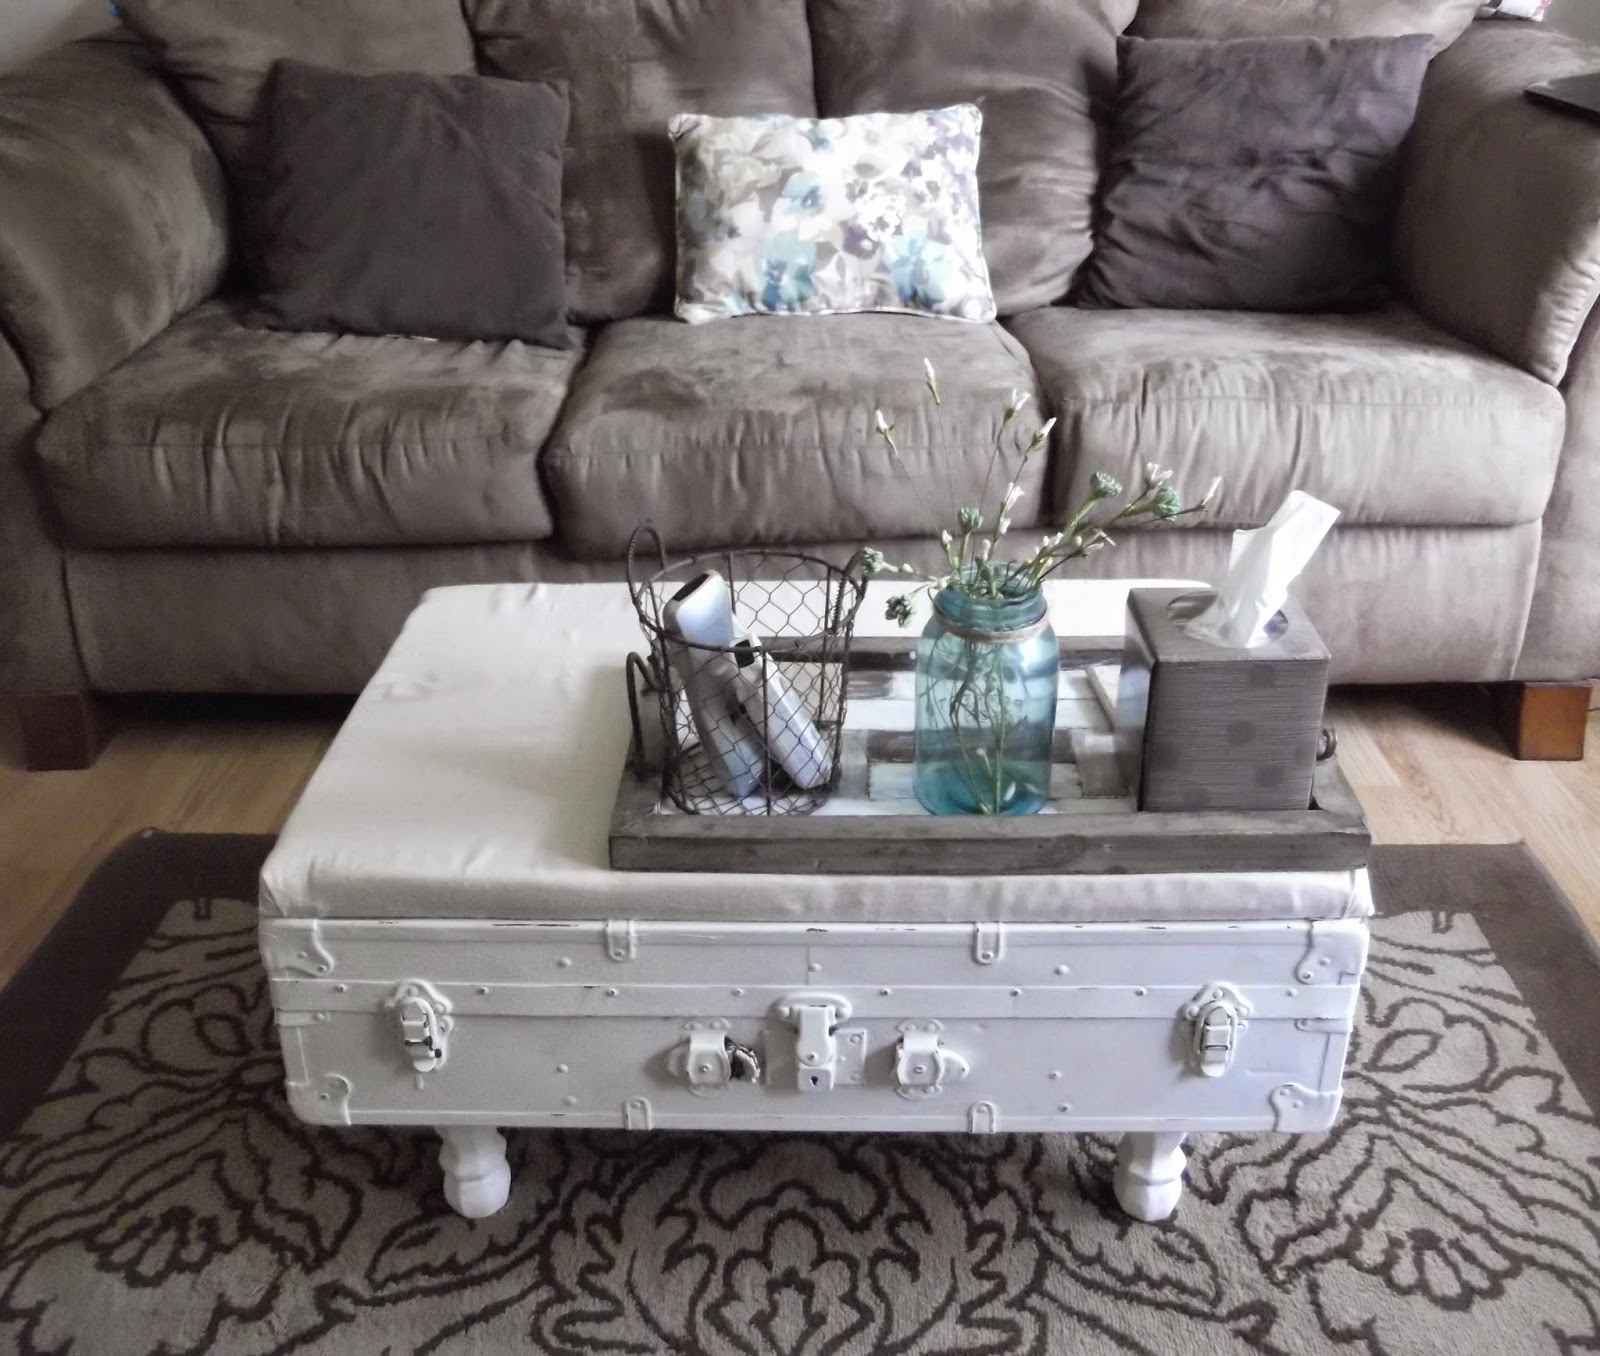 Thrifty 31 Blog: DIY Trunk Coffee Table